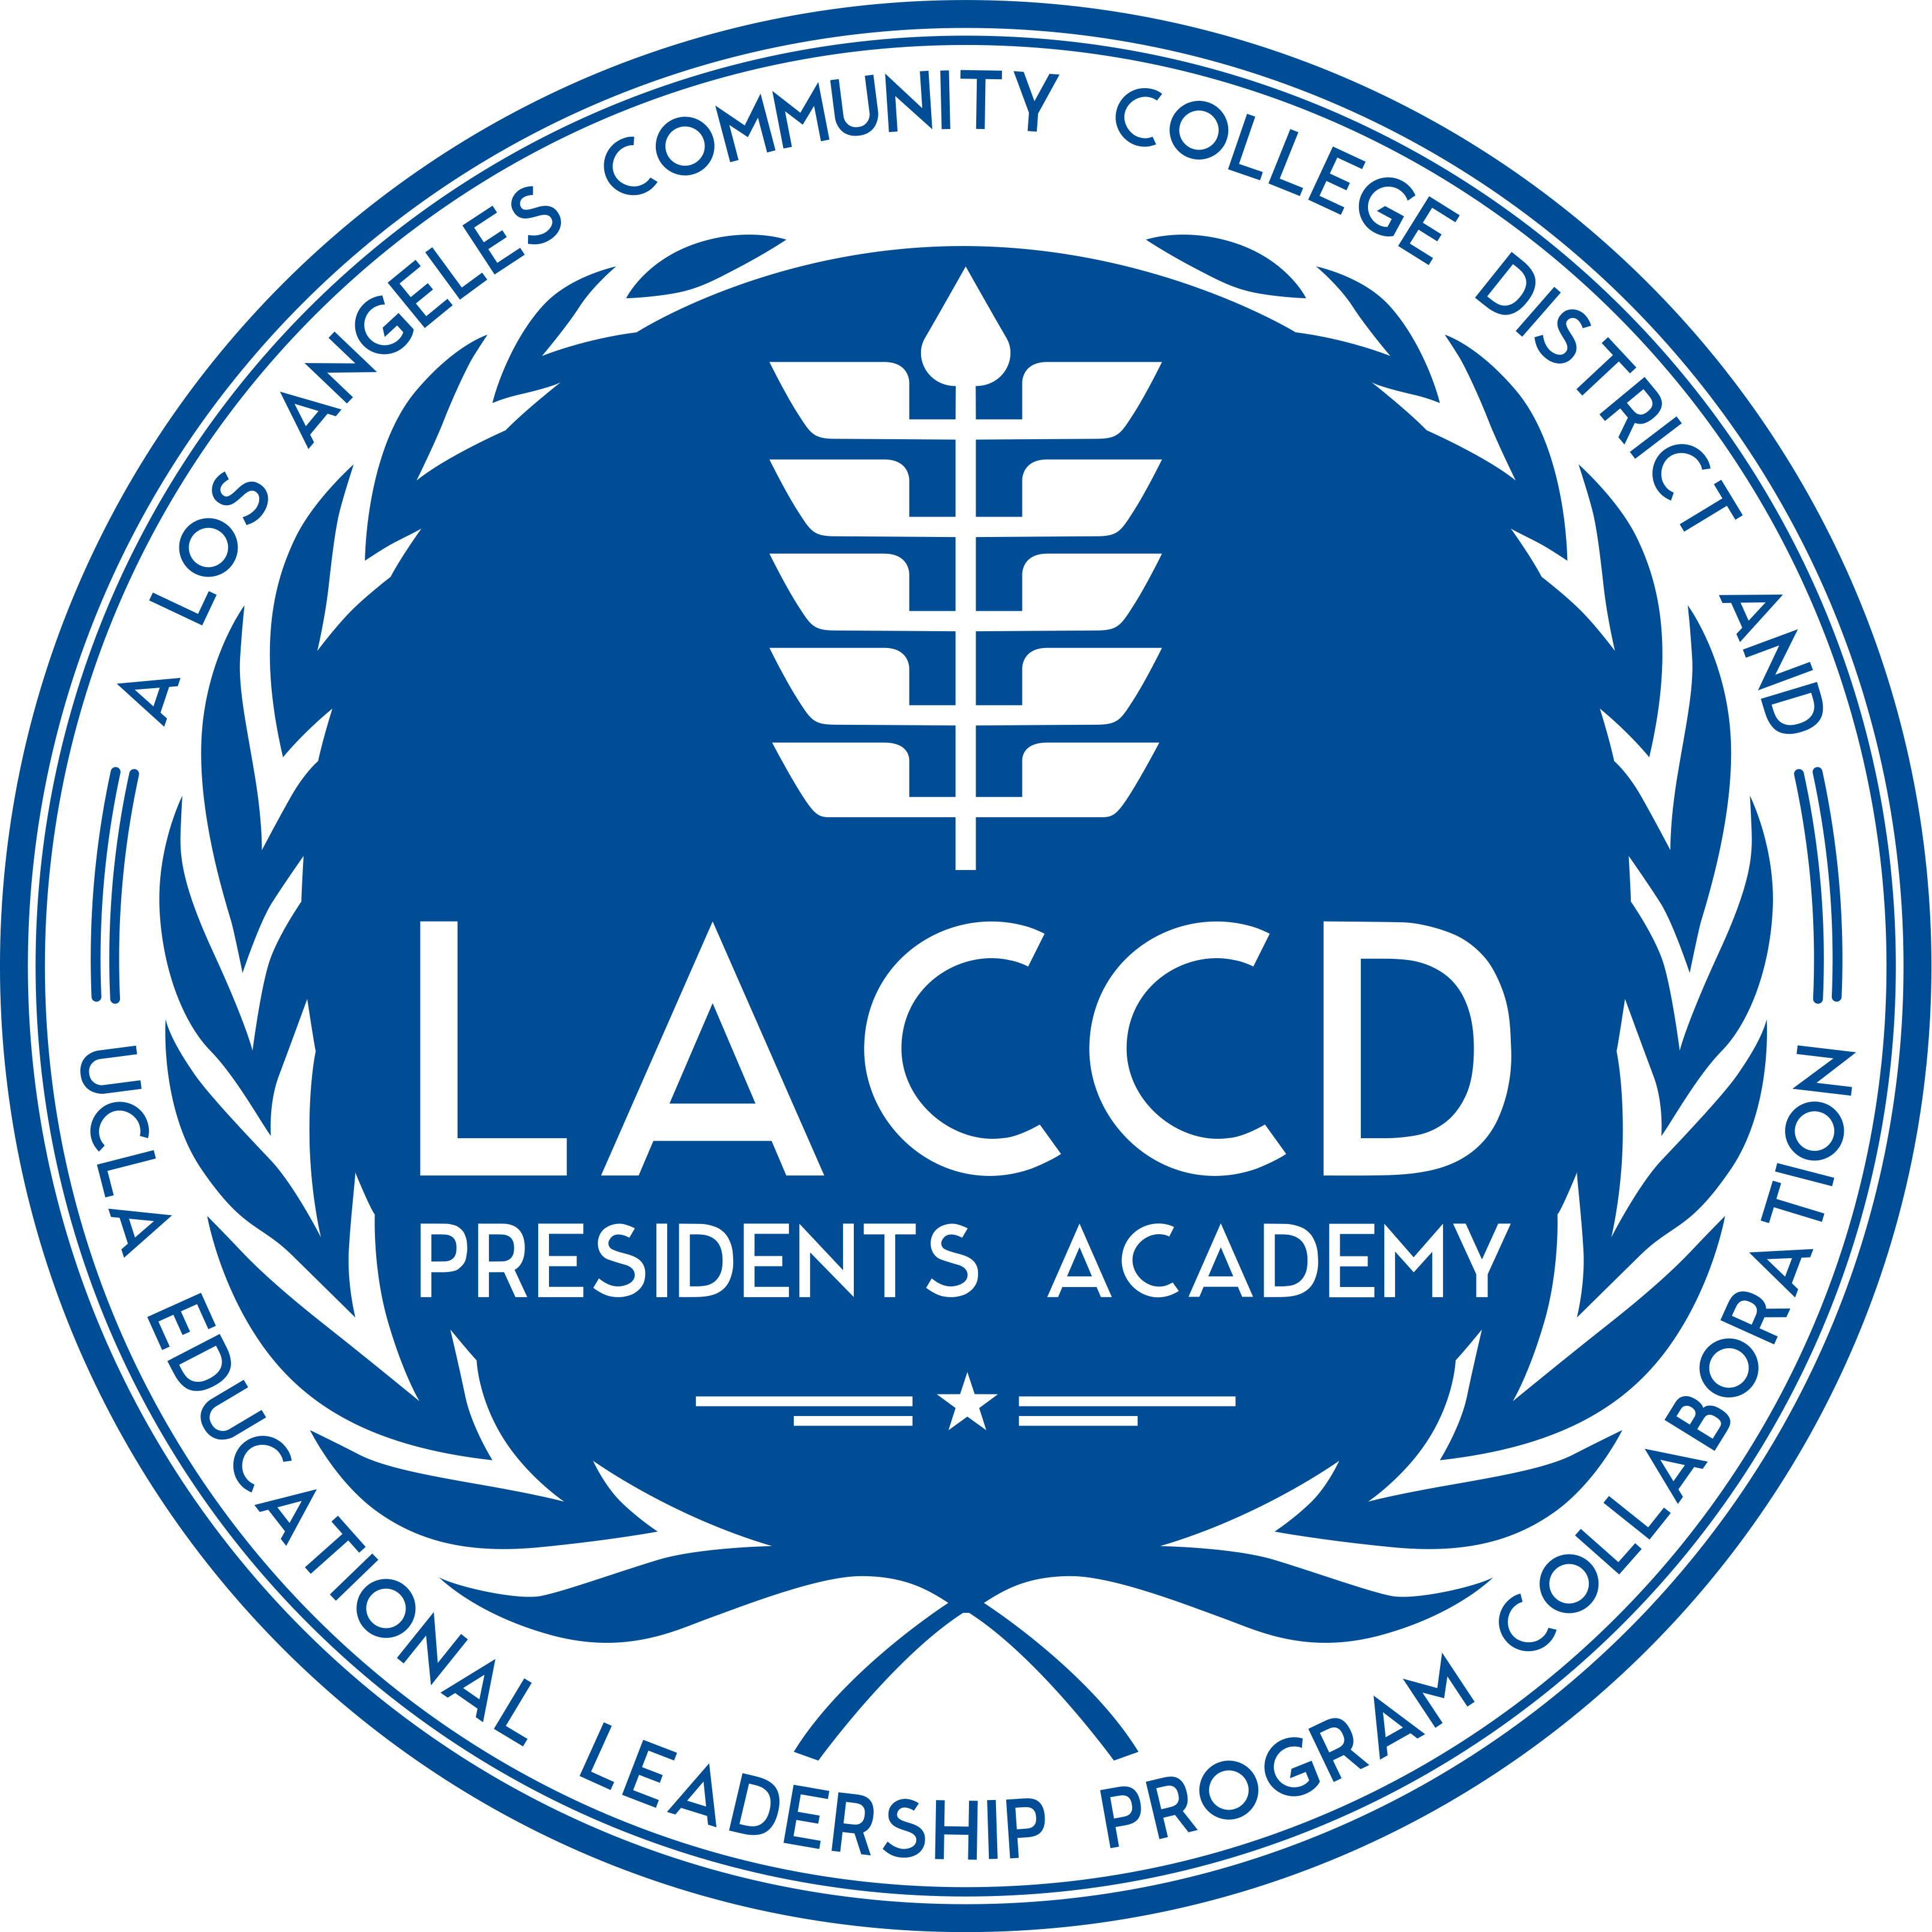 LACCD Presidents Academy Logo